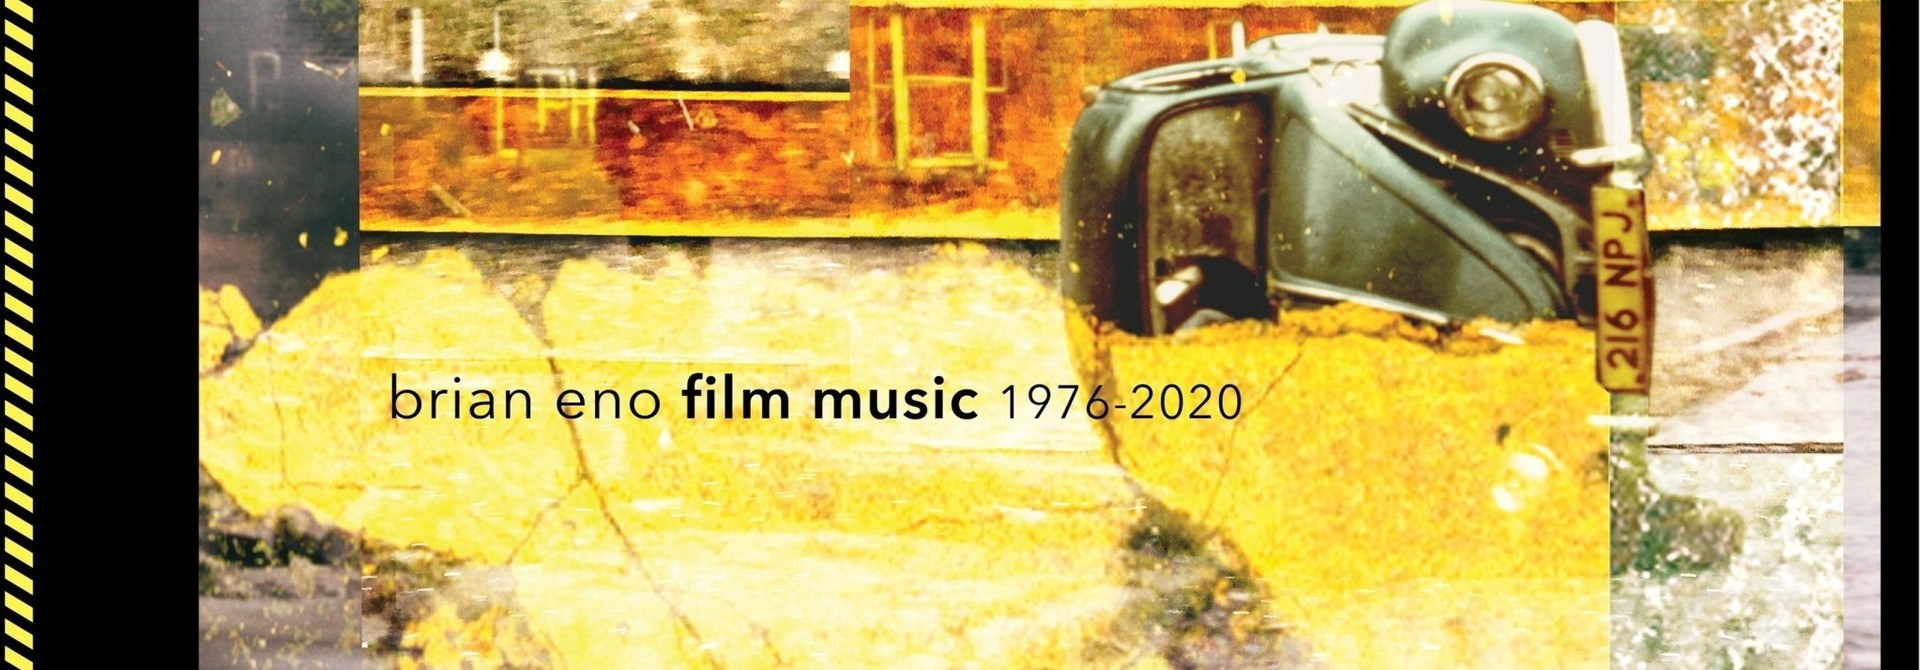 Brian Eno • Film Music 1976-2020